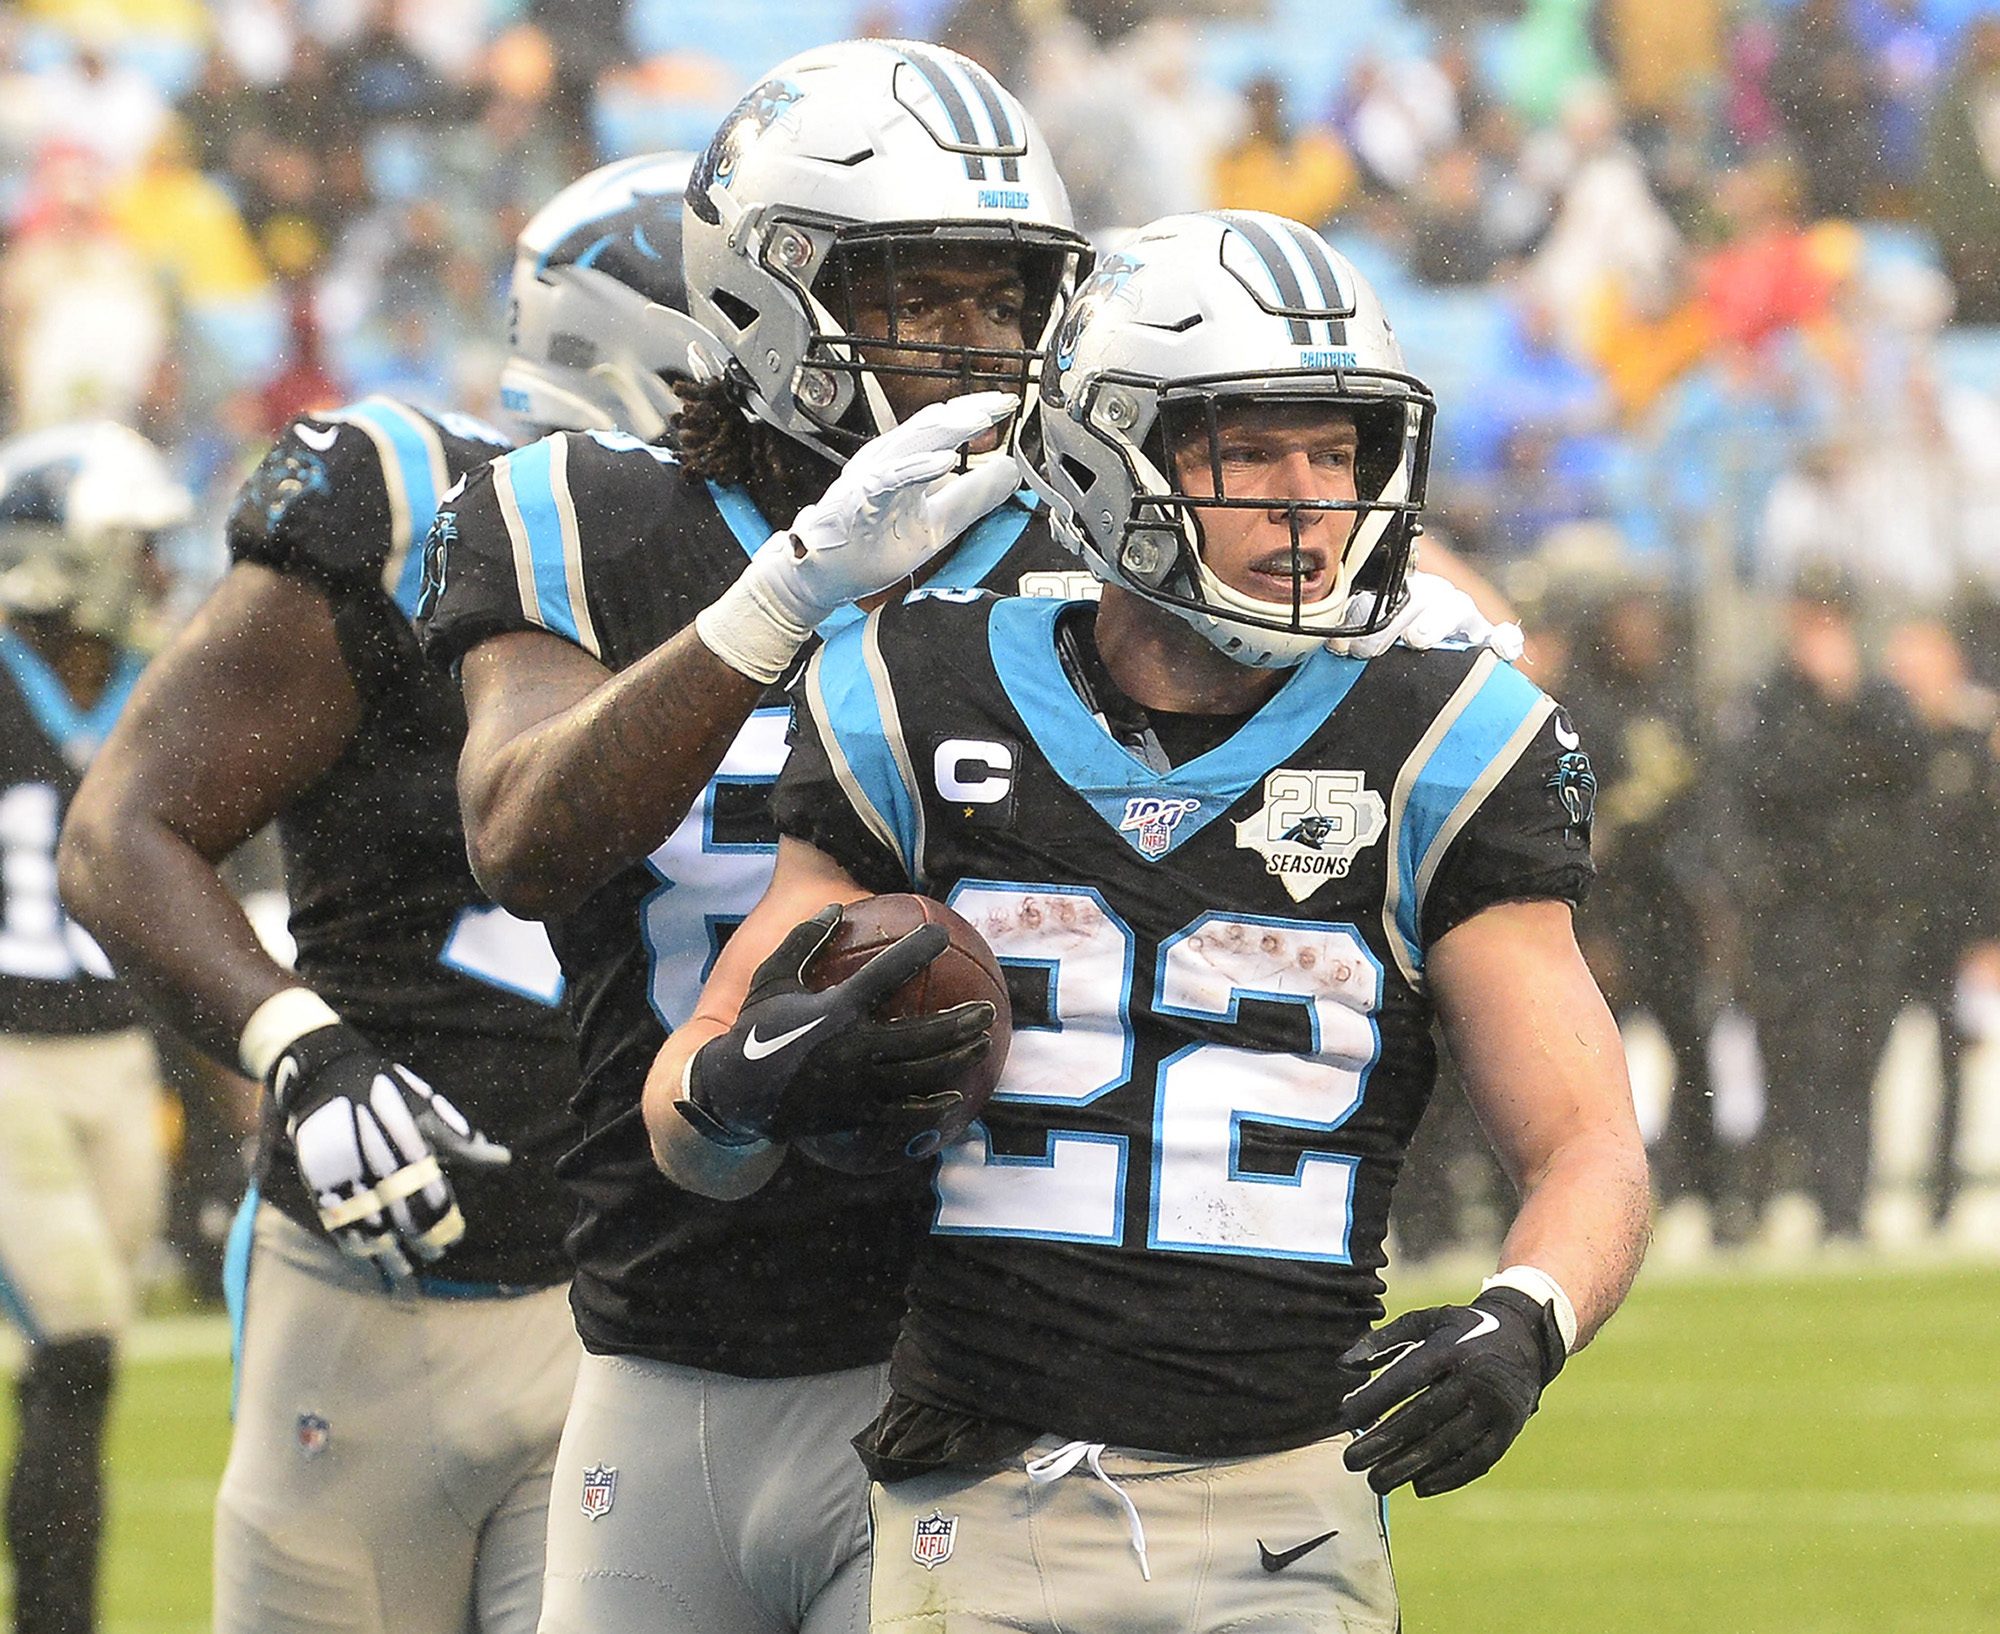 Christian McCaffrey celebrates after a run